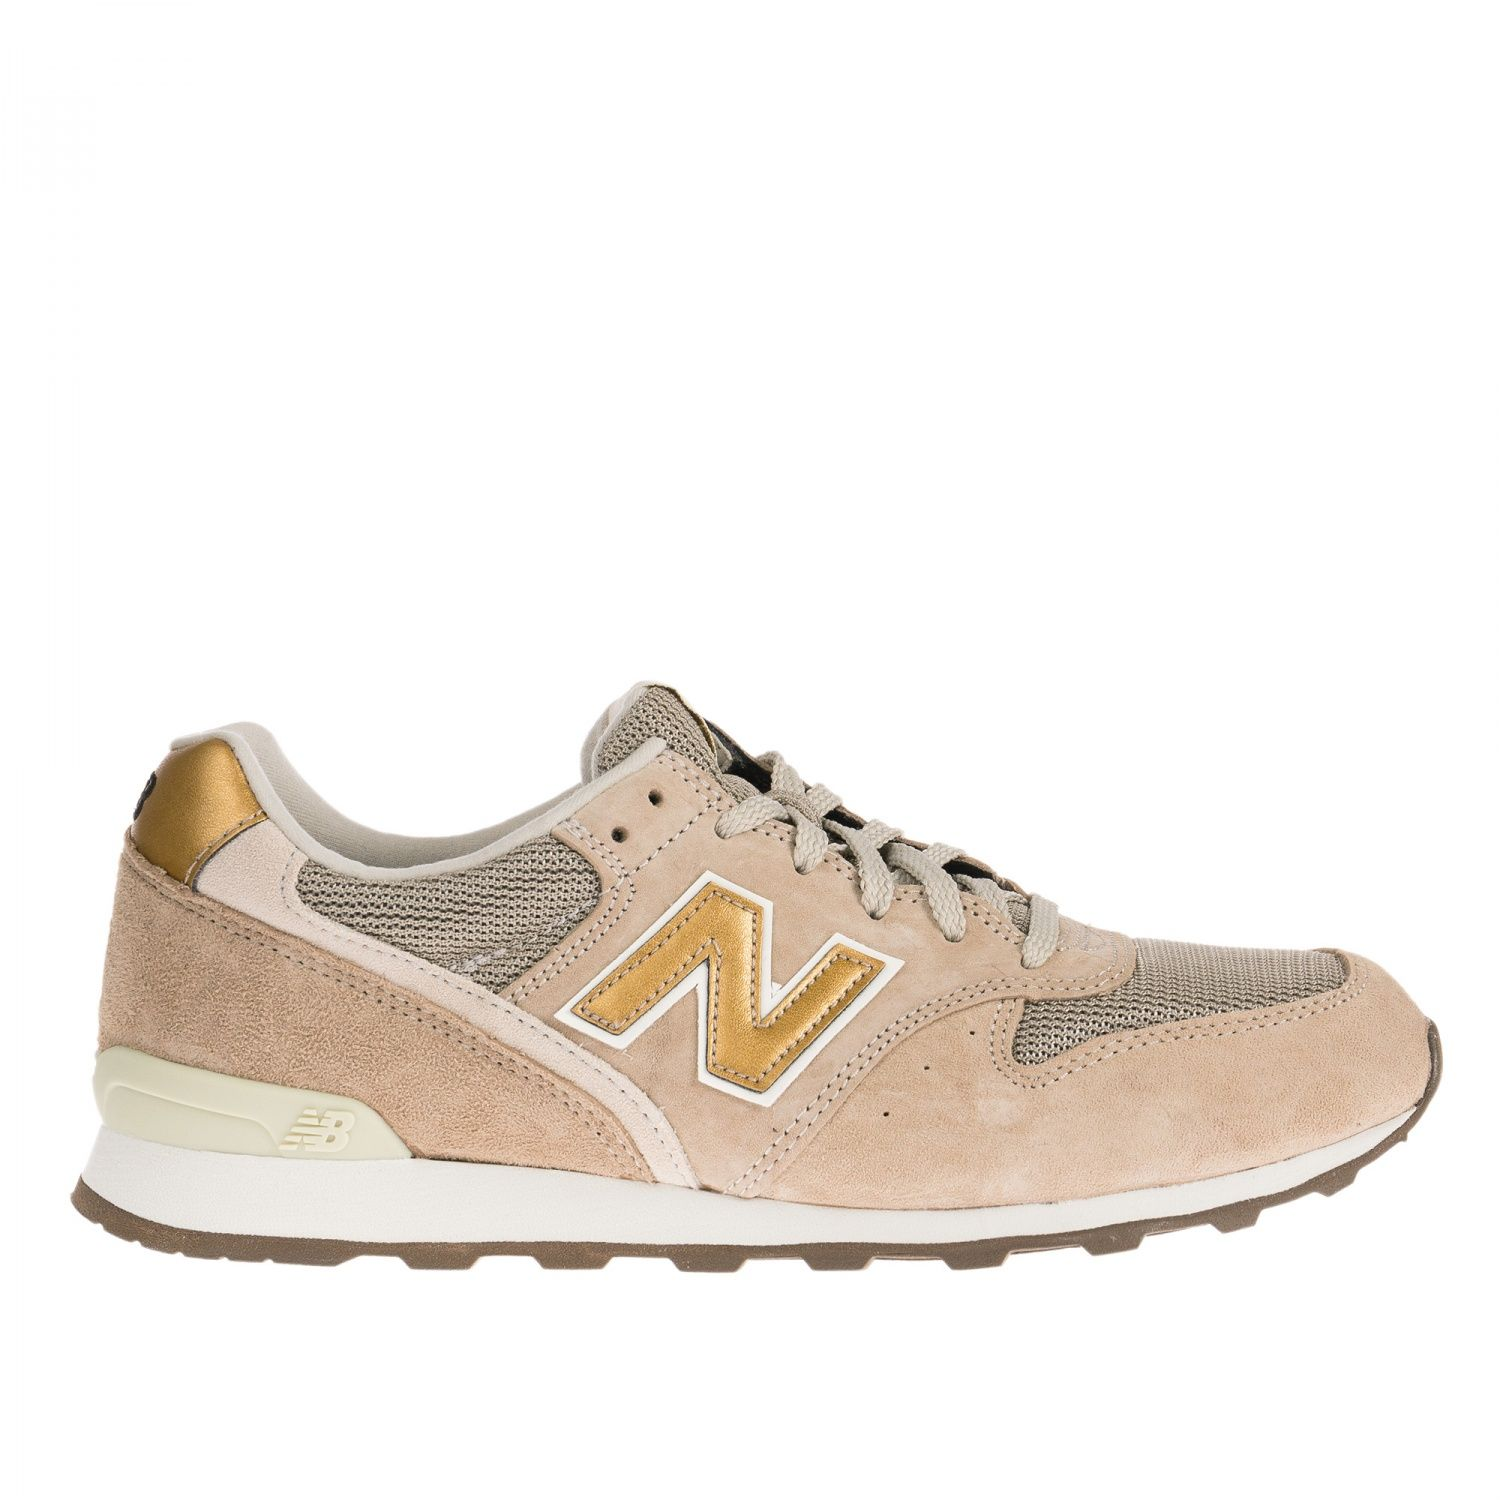 timeless design 59a1f 98f17 New Balance Beige-Gold | wish list | Zapatos de cristal ...